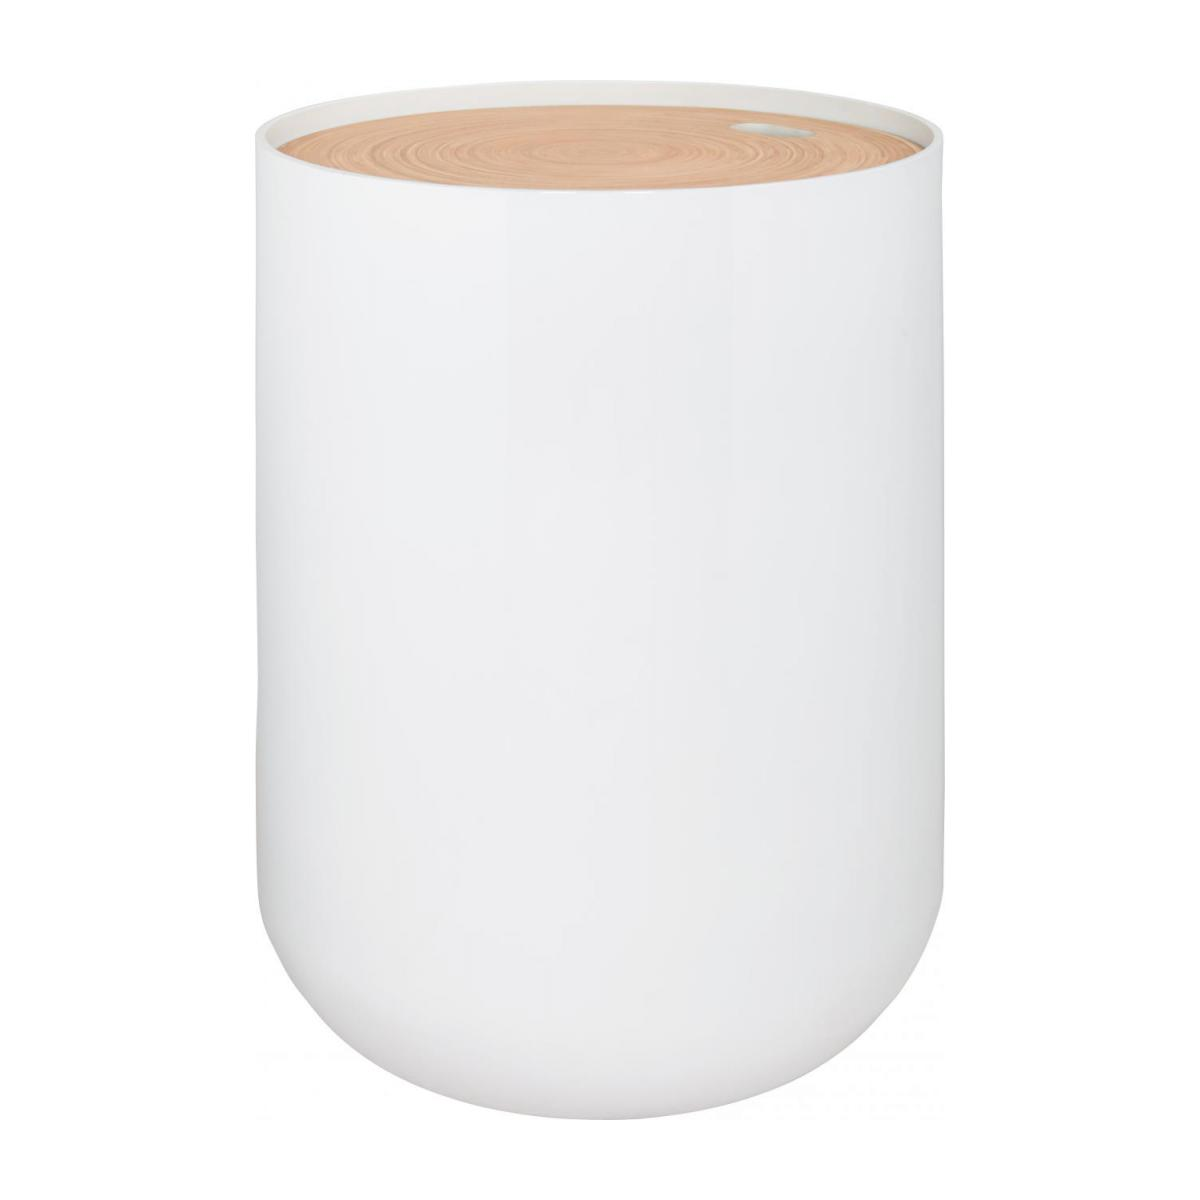 Table D Appoint Blanche Blyth Table D 39appoint 40 Cm En Bambou Blanche Habitat